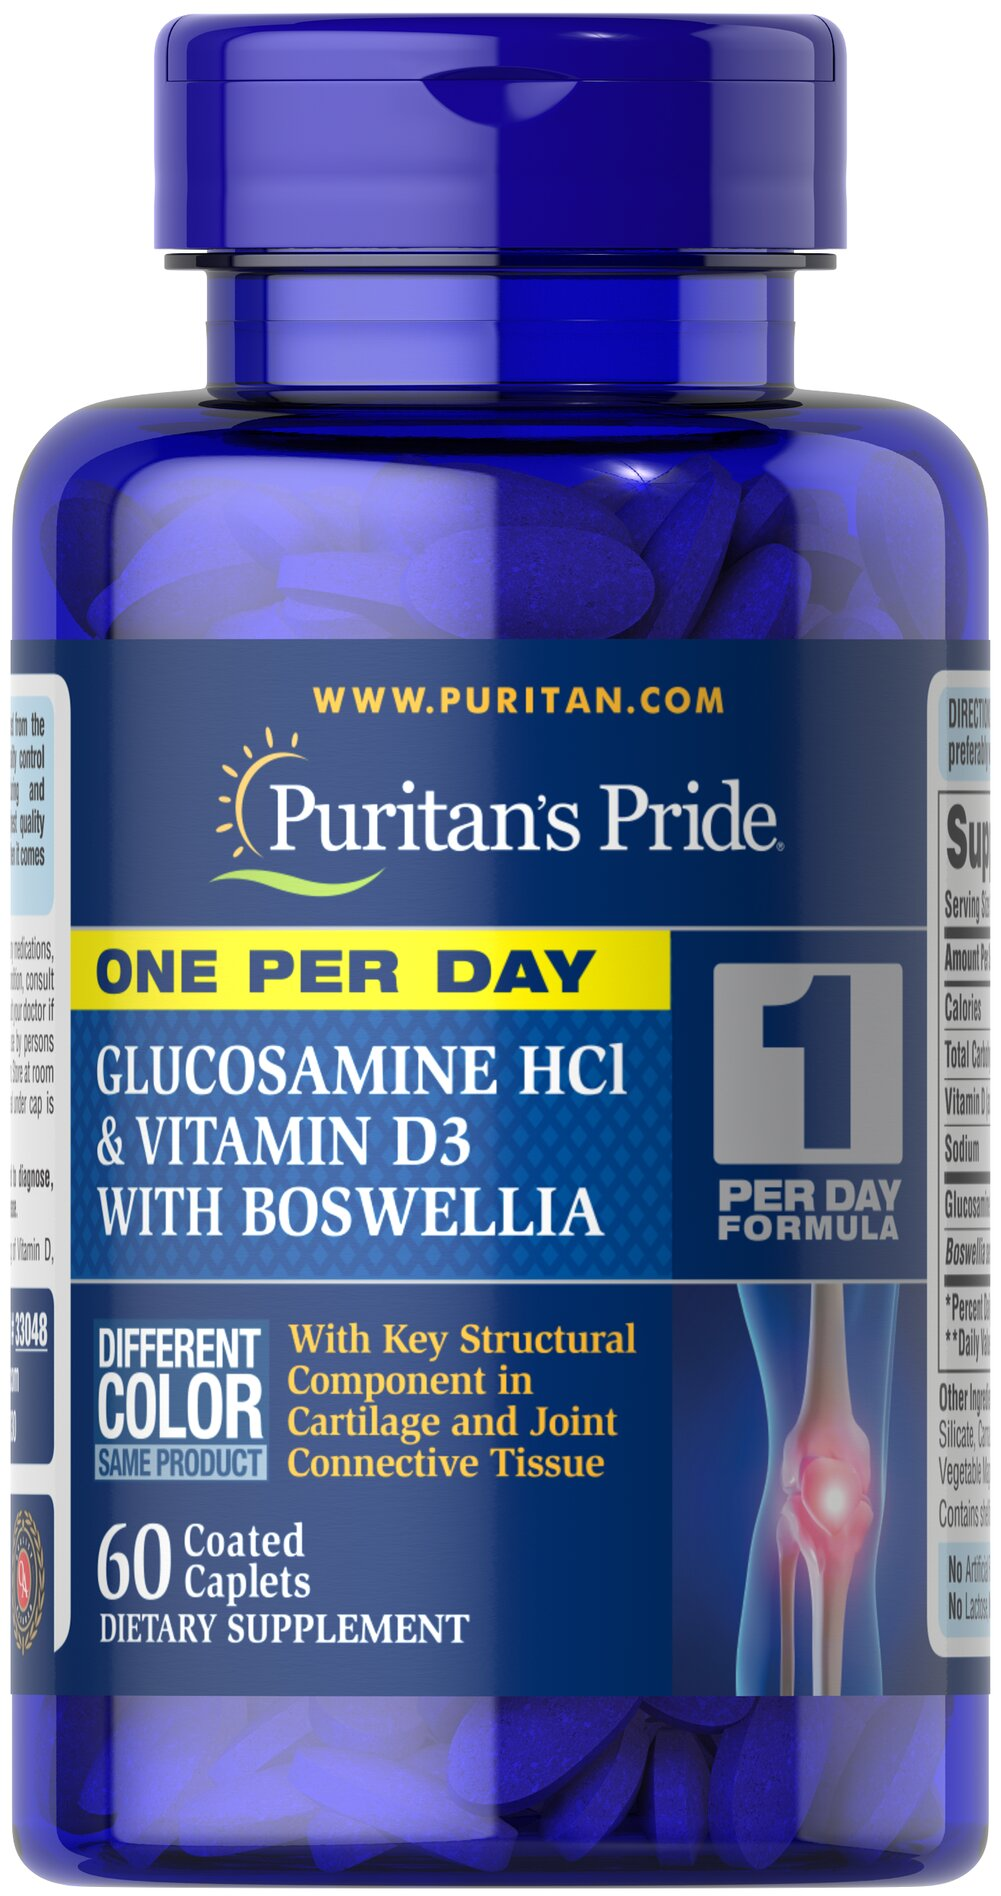 One Per Day Glucosamine, Vitamin D3 & Boswellia <p>One caplet a day provides powerful support for healthy joints, bones and cartilage**</p><p>Features Glucosamine to cushion and lubricate the joints, while promoting comfortable joint movement**</p><p>Helps support joint cartilage**</p><p>Includes Vitamin D3 to help maintain bone health and density**</p><p>Individual Results May Vary.<br /></p><p></p> 60 Caplets  $2